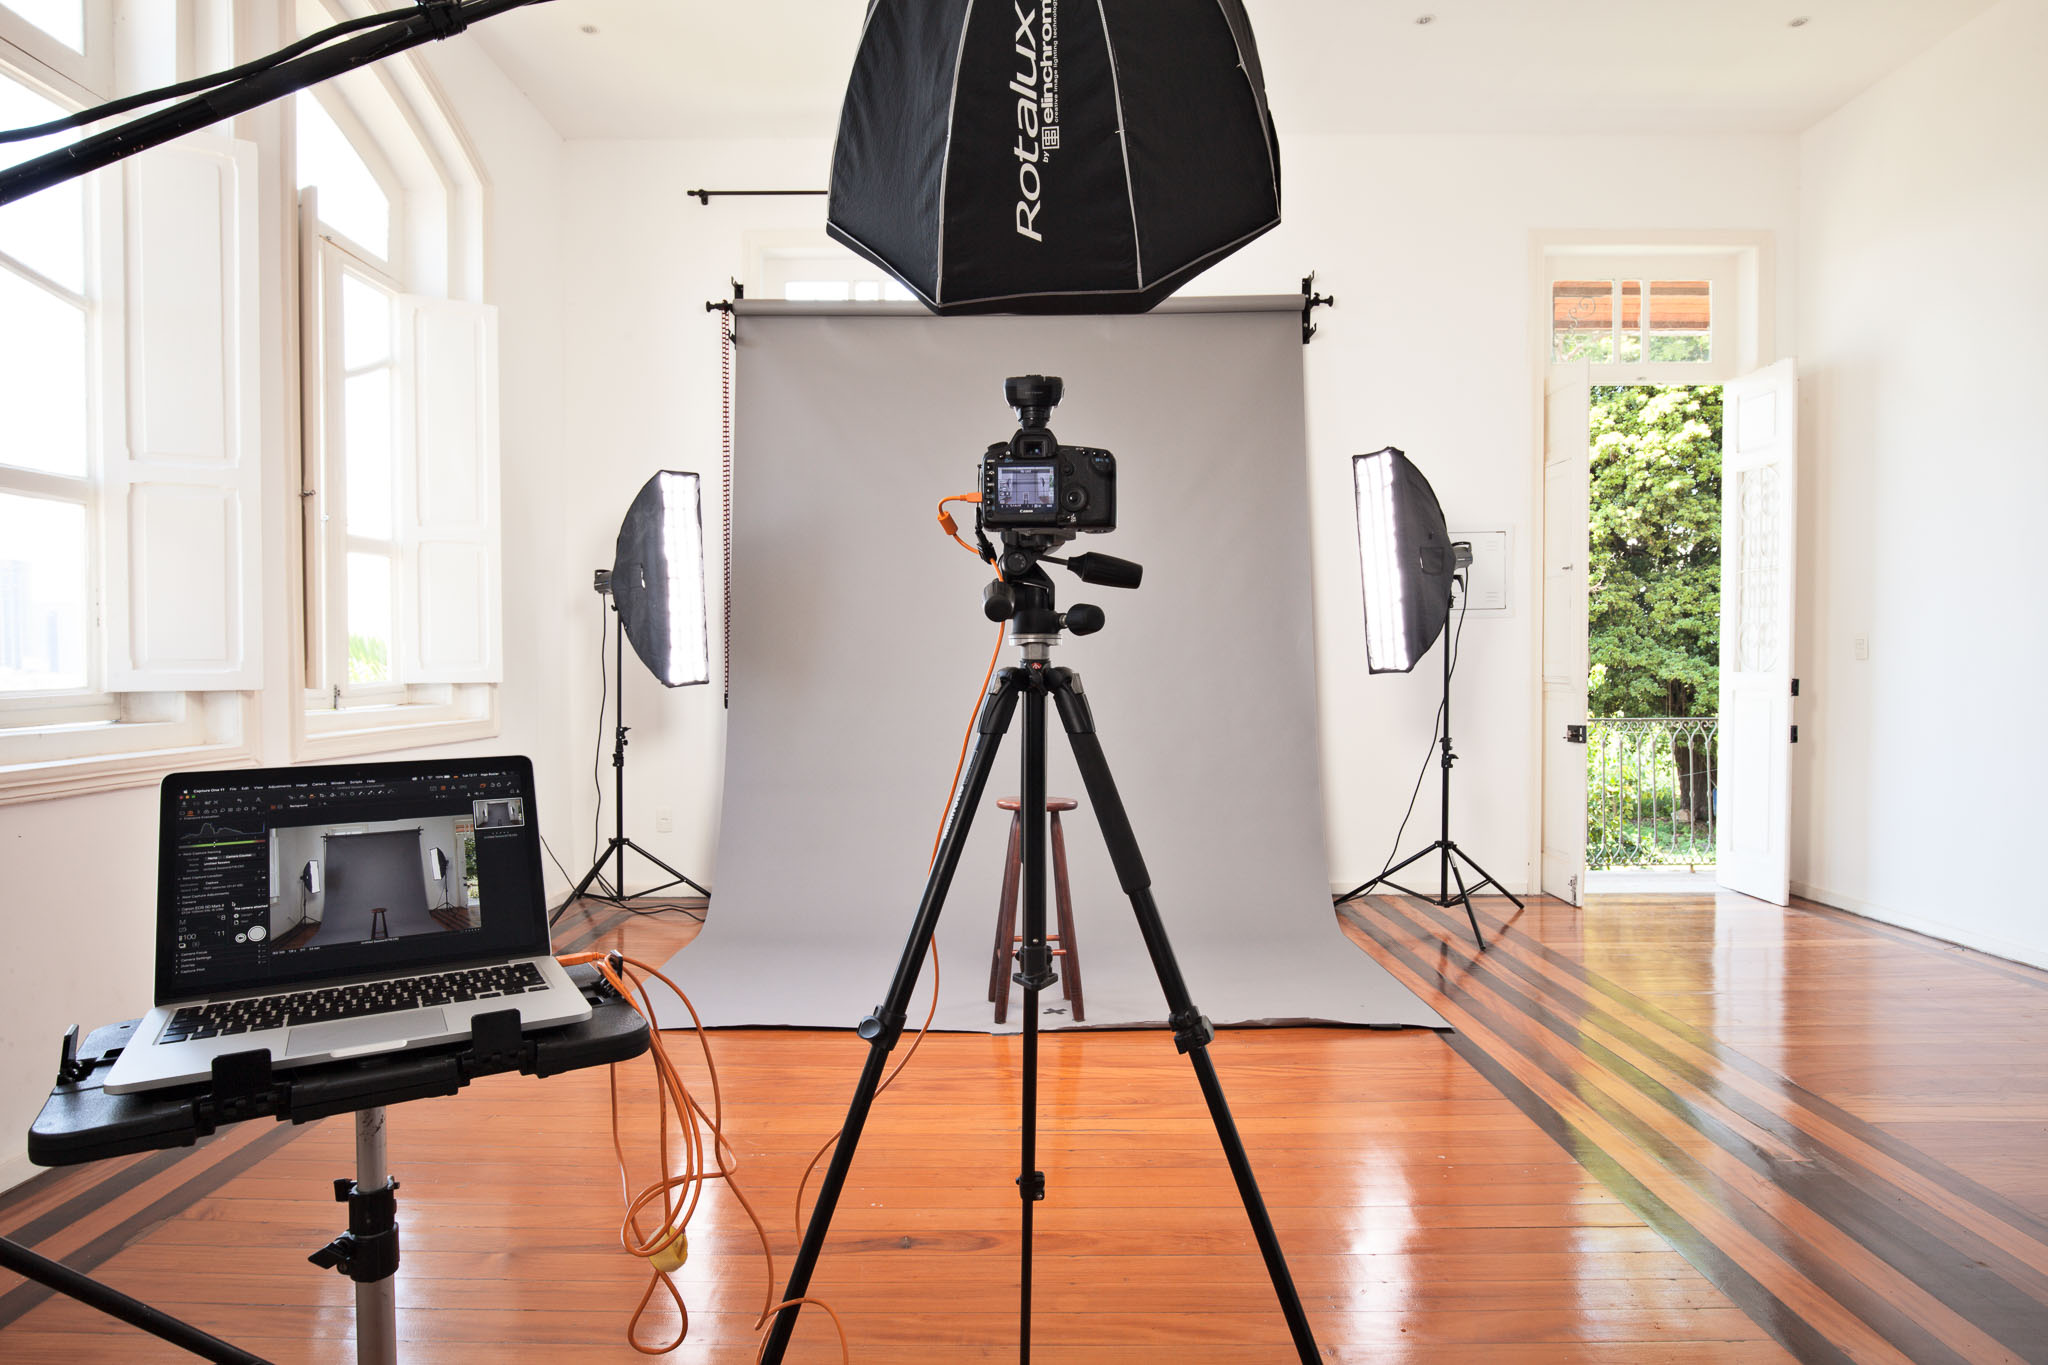 The studio is equipped with flashes, a large diversity of light modifiers, accessories for tethered capture, WLAN and air conditioning.